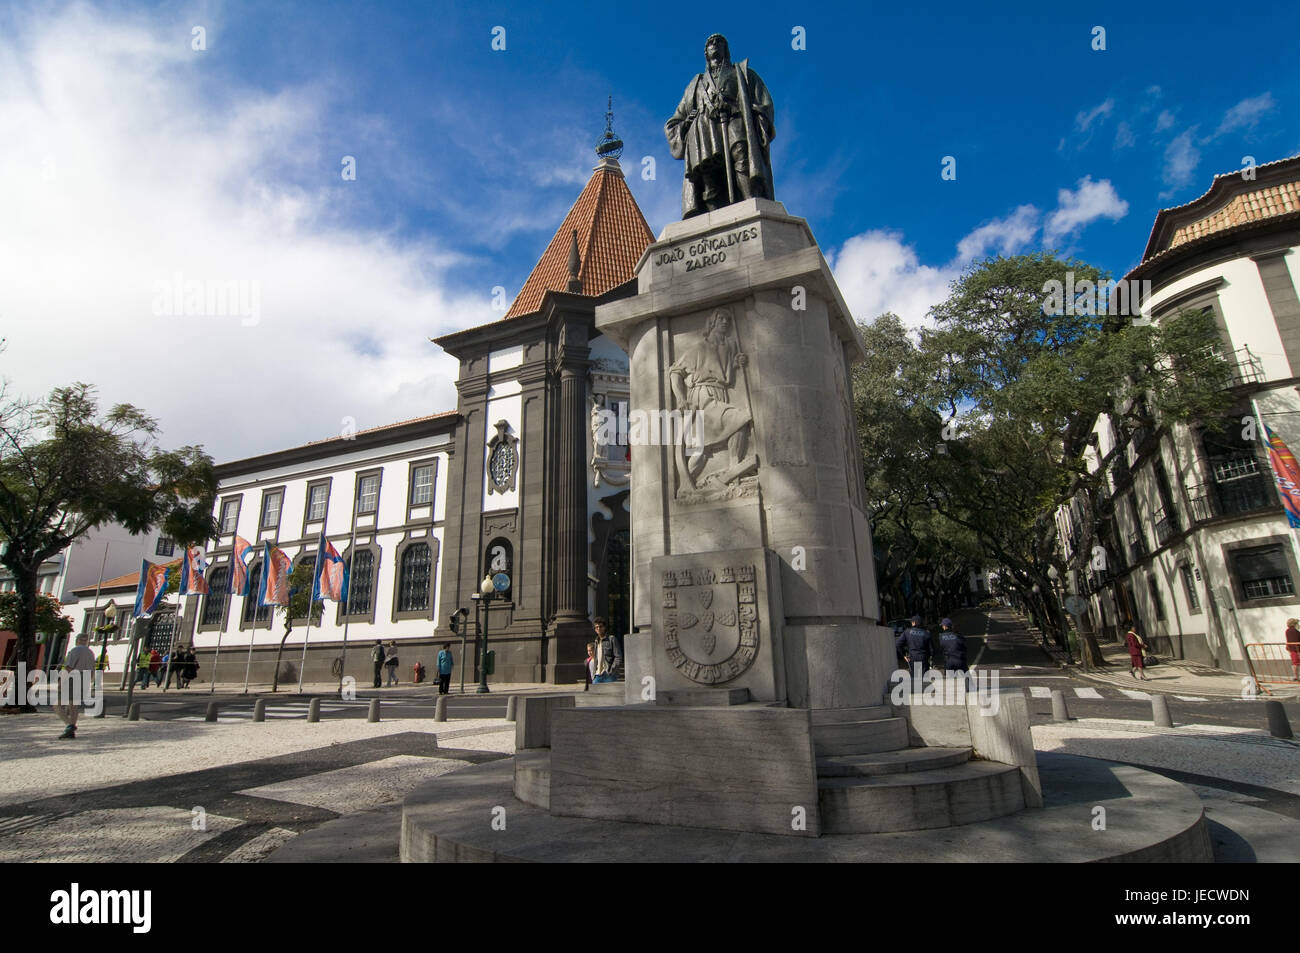 Statue of the discoverer Zarco, Funchal, Madeira, - Stock Image